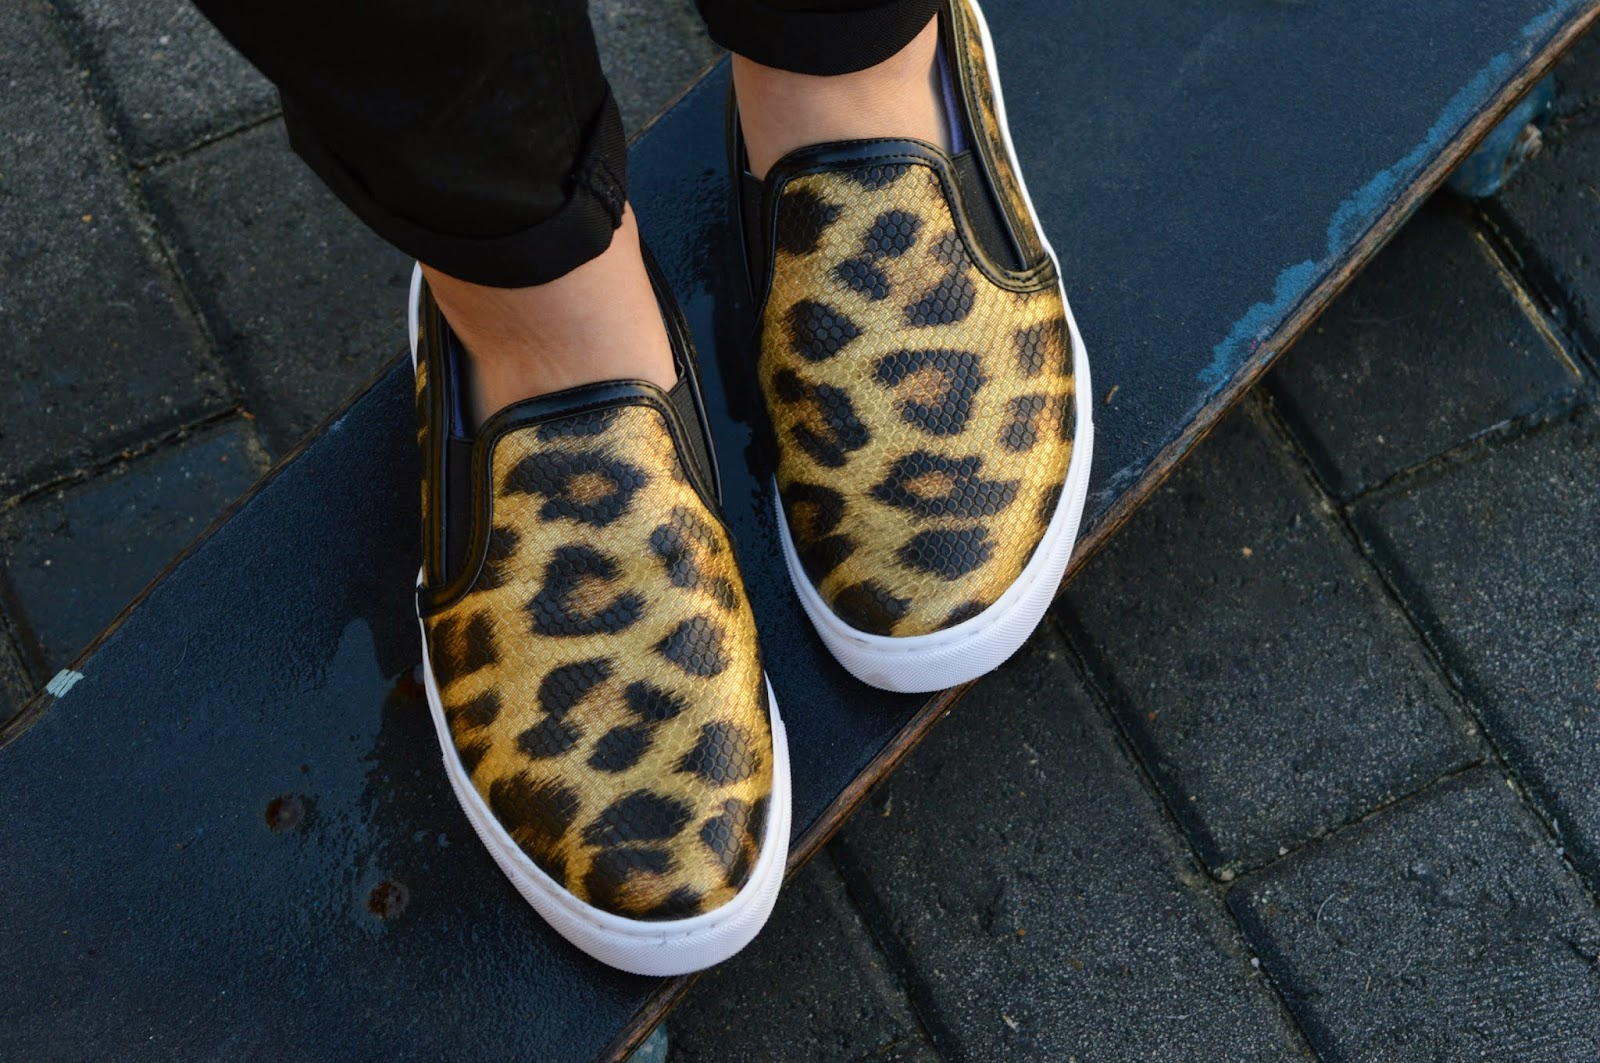 44a736e6e4b4 Slip On/Skate Shoes are a trend that a lot of people enjoyed last year, and  towards the back end of 2014 I got myself this leopard print pair from  River ...